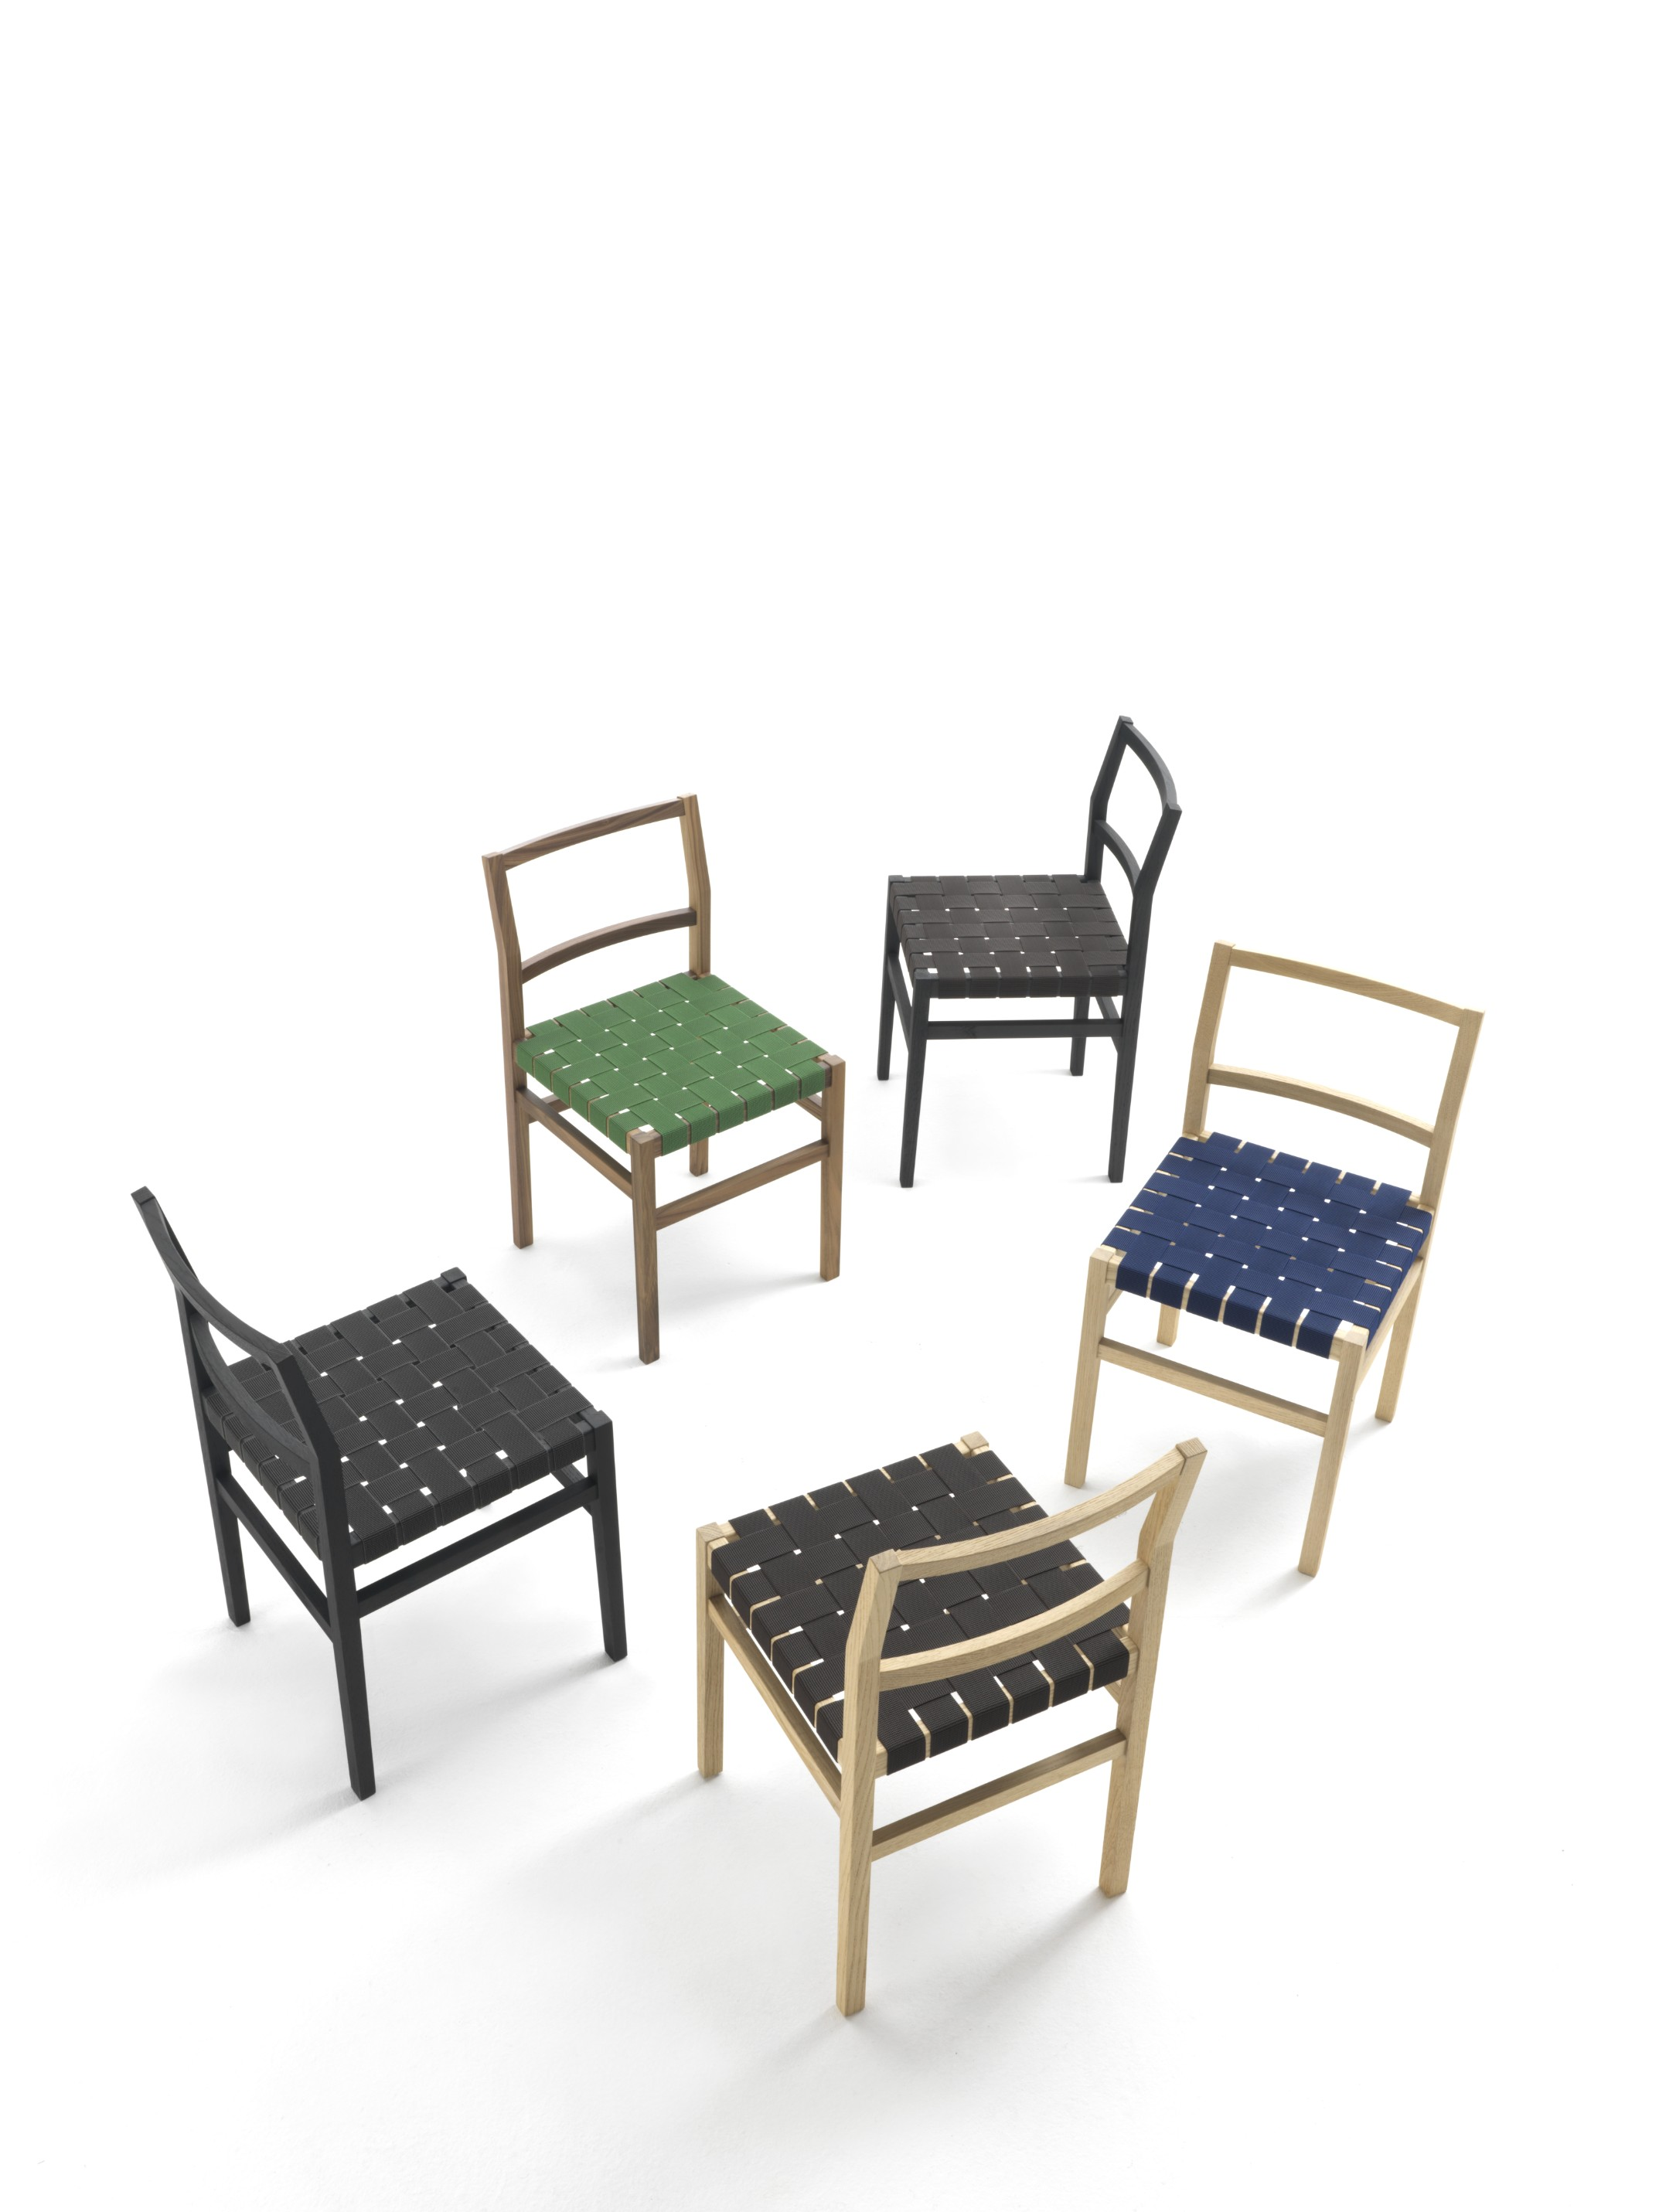 Cross Chair - From Moltenimobili / Durame's Historical Archive, a family of seats whose lightness and versatility characterise a structure made of solid Wood and technical woven. | Matter of Stuff